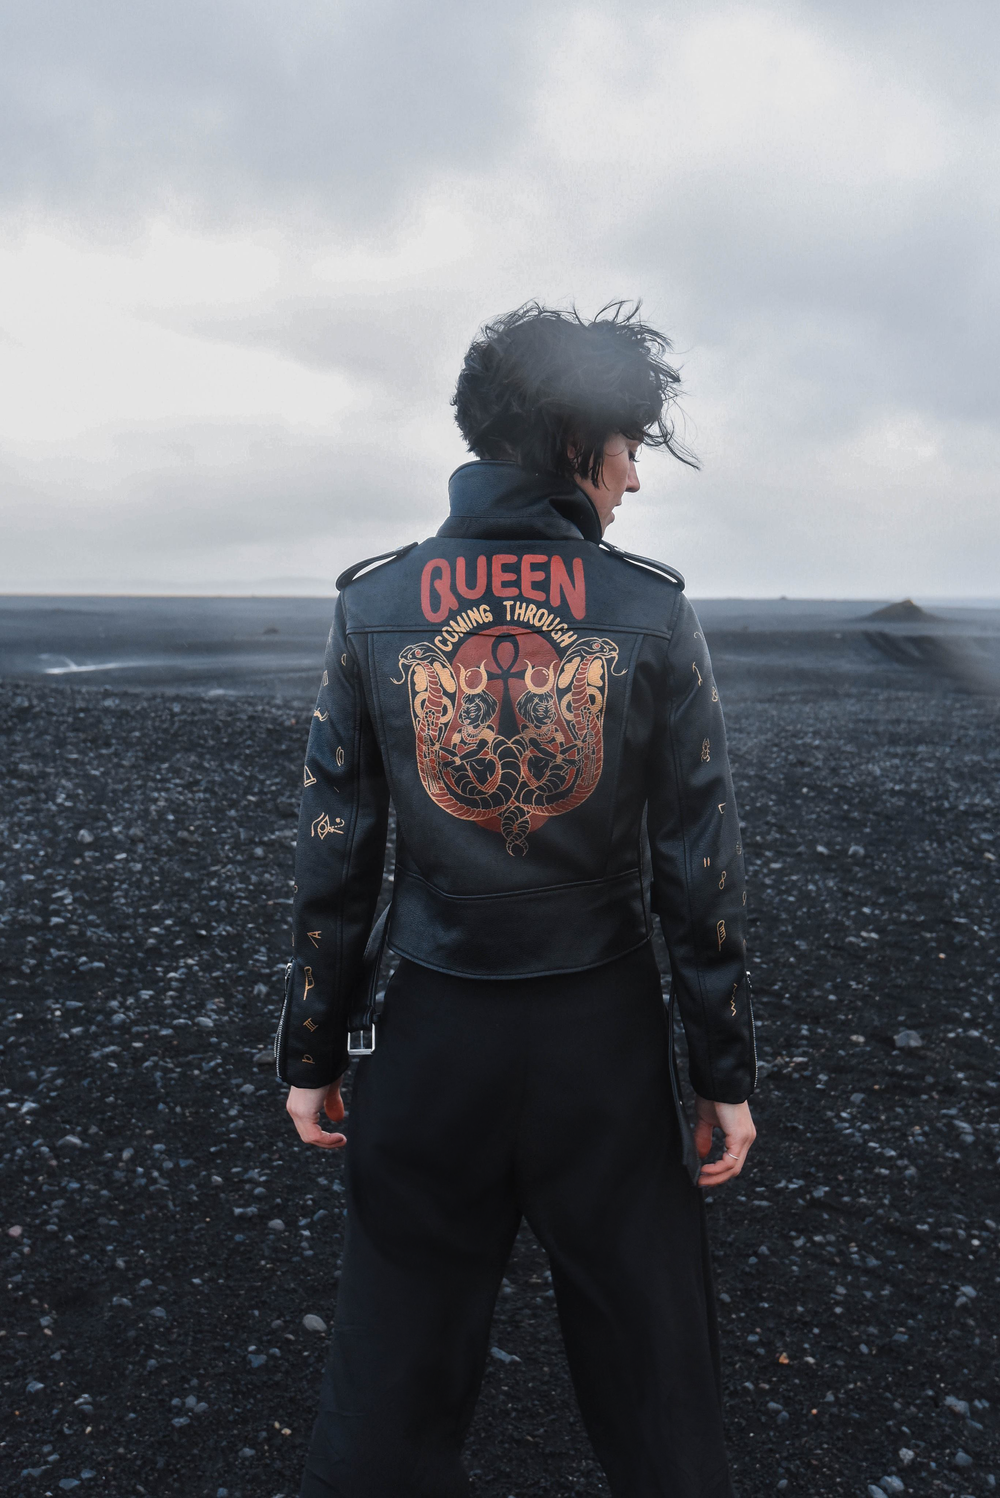 'QUEEN COMING THROUGH' Image by  @lauramannersdesign  Jacket by  @birdbirdbirdbirdisthe